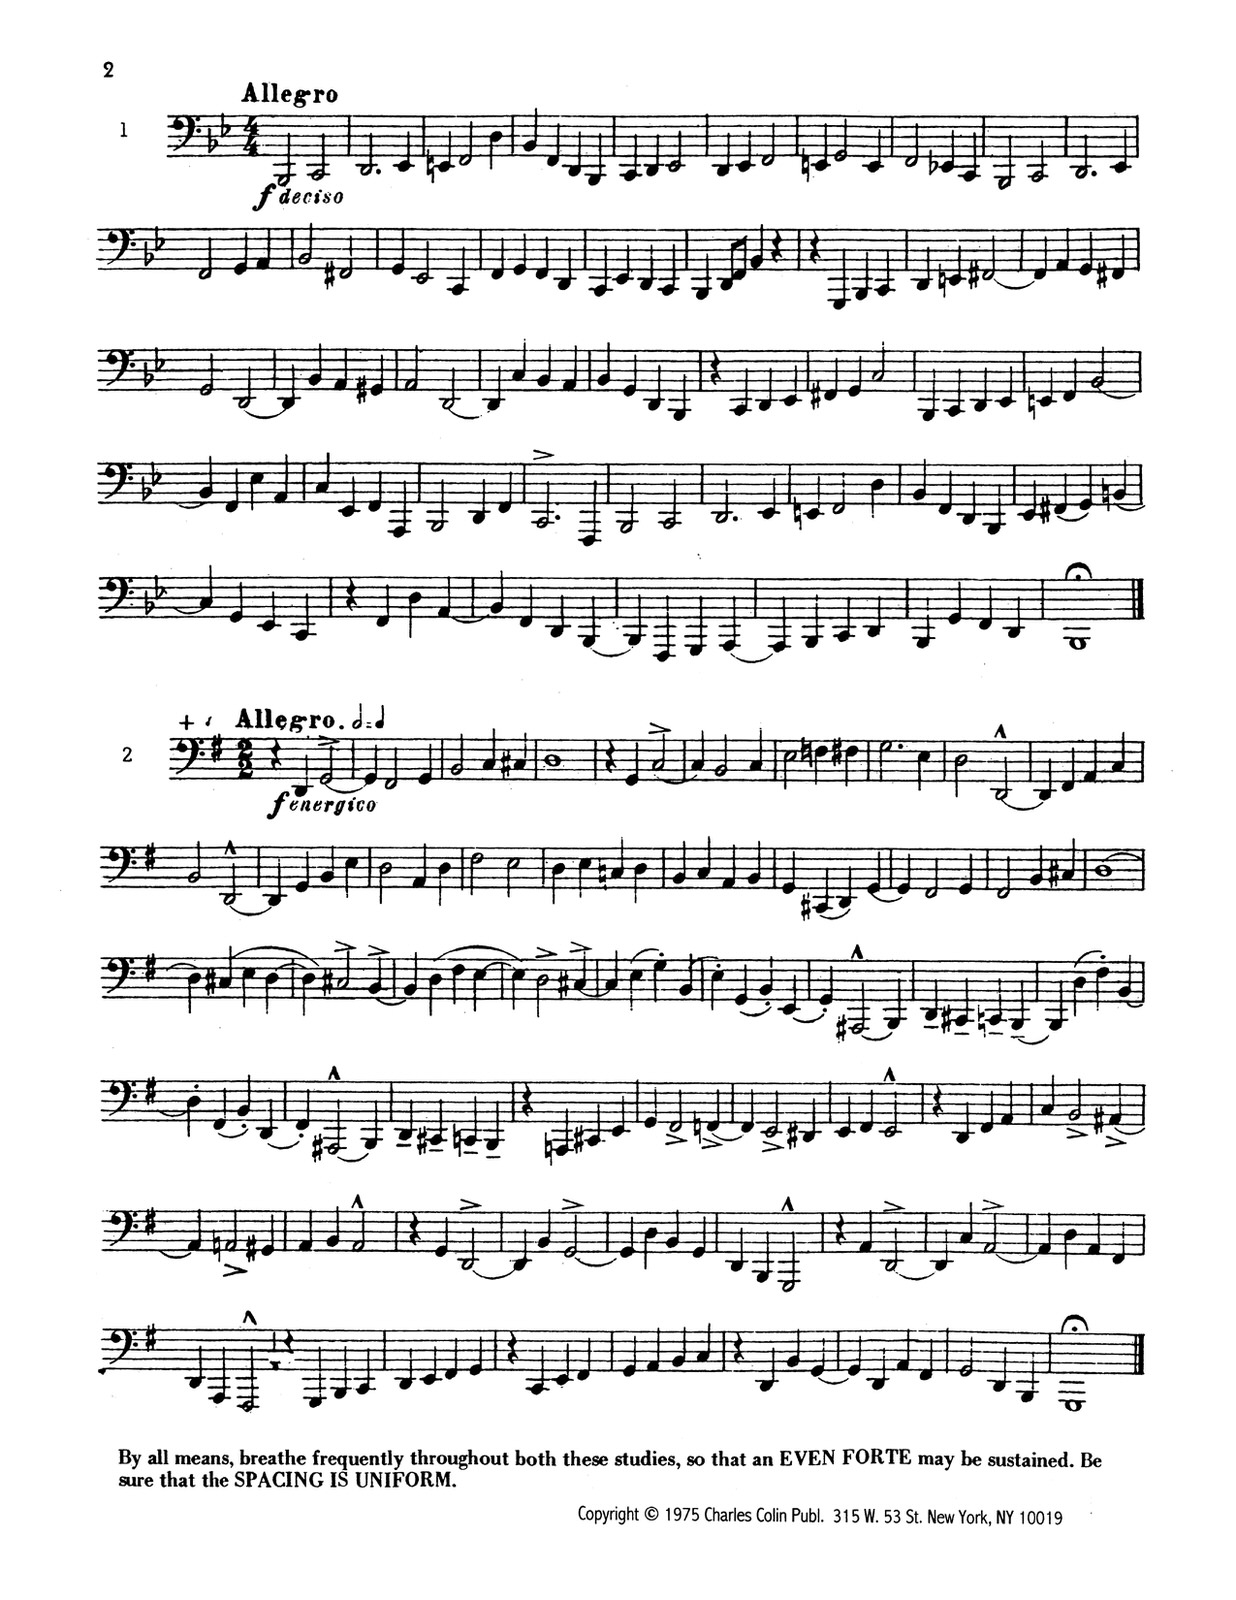 Bell, Blazevich Tuba Interpretations (keep copyrights)-p02